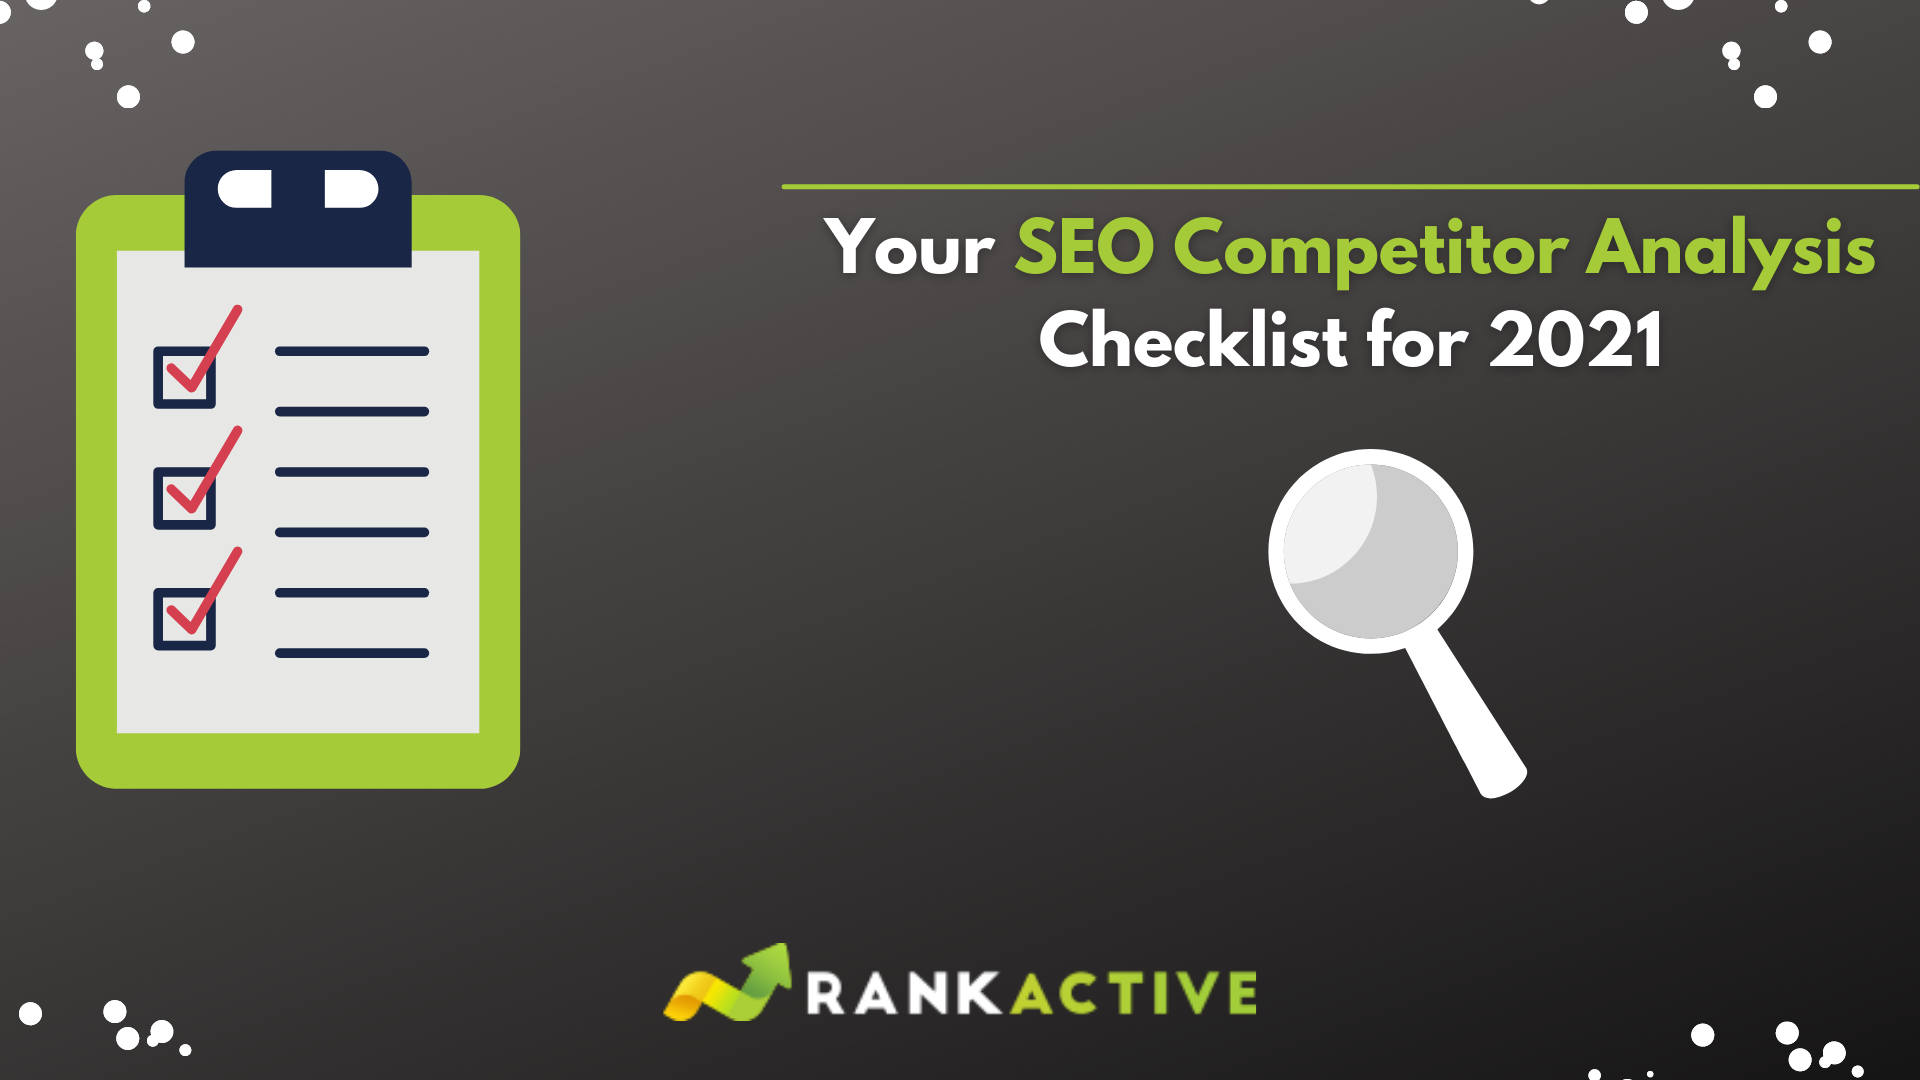 SEO Competitor Analysis Checklist